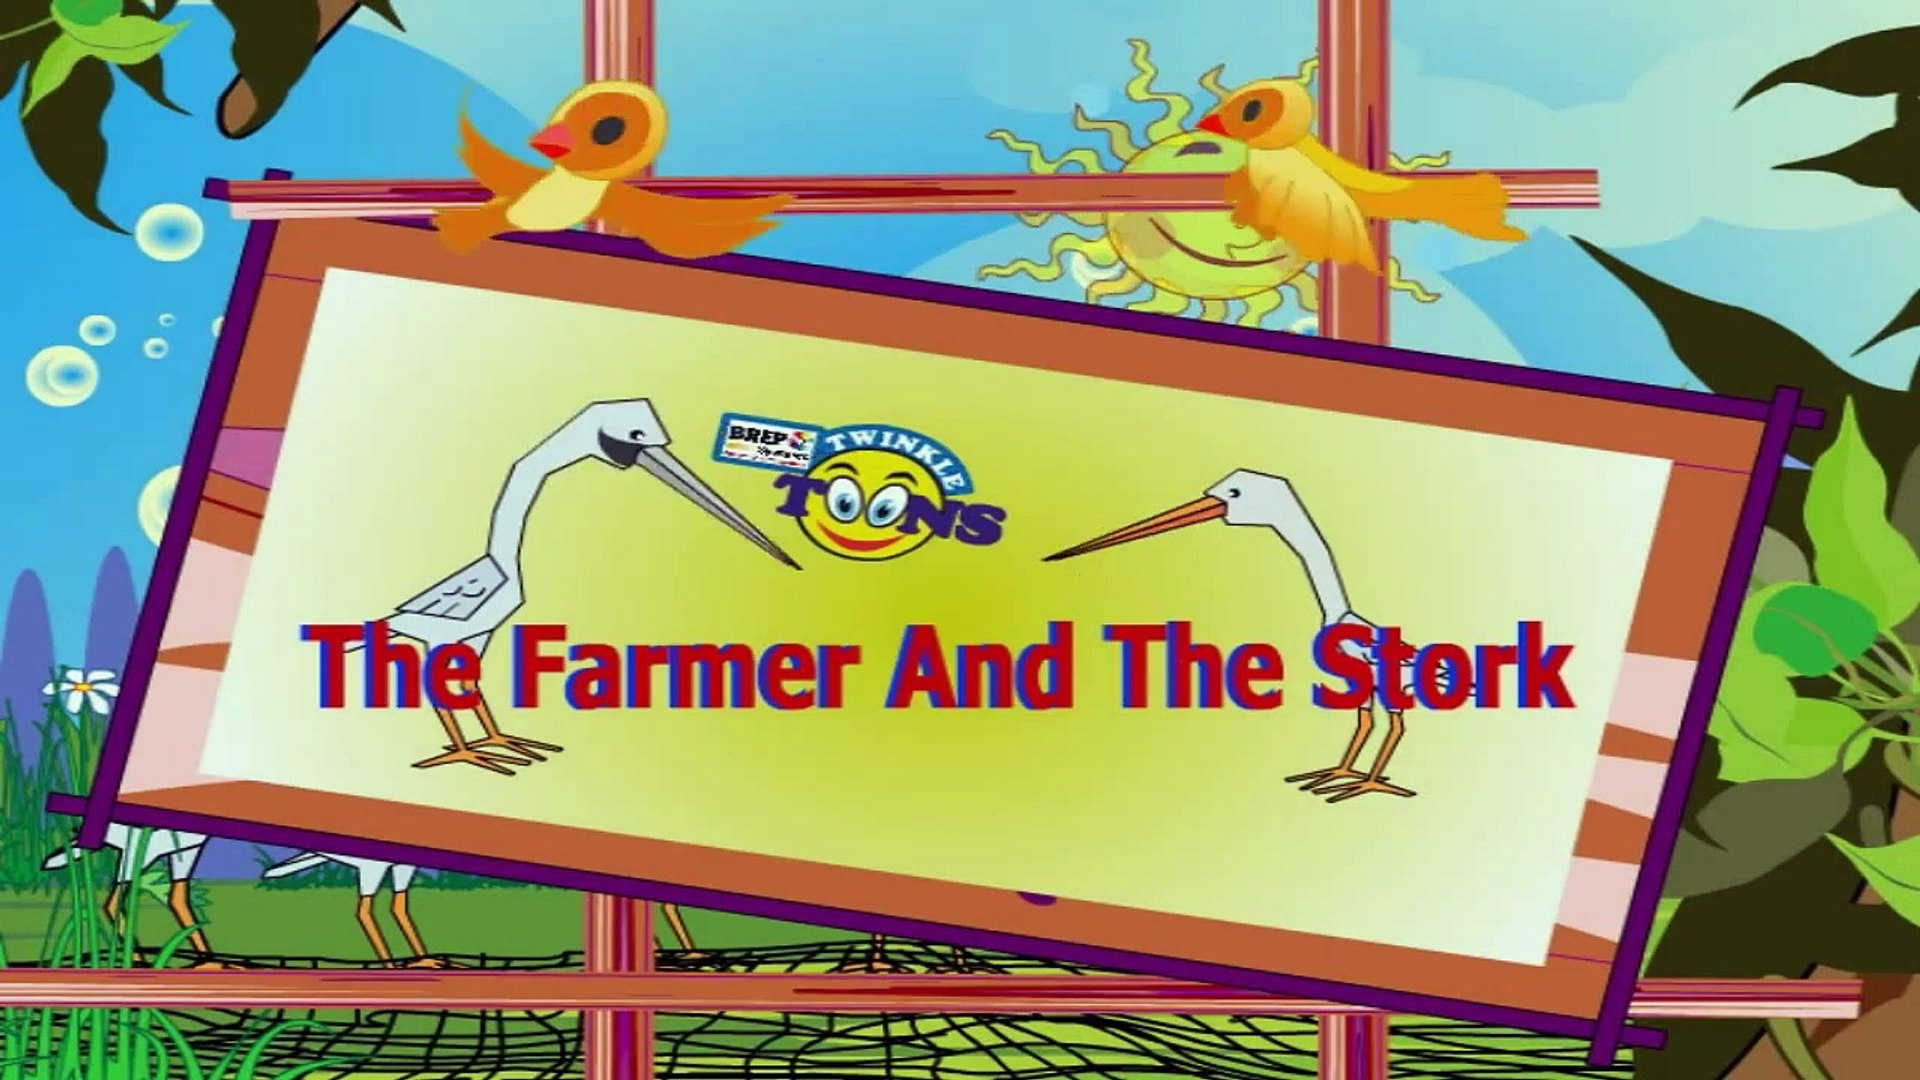 The Farmer And The Stork ## Moral Story In English - Kids Education